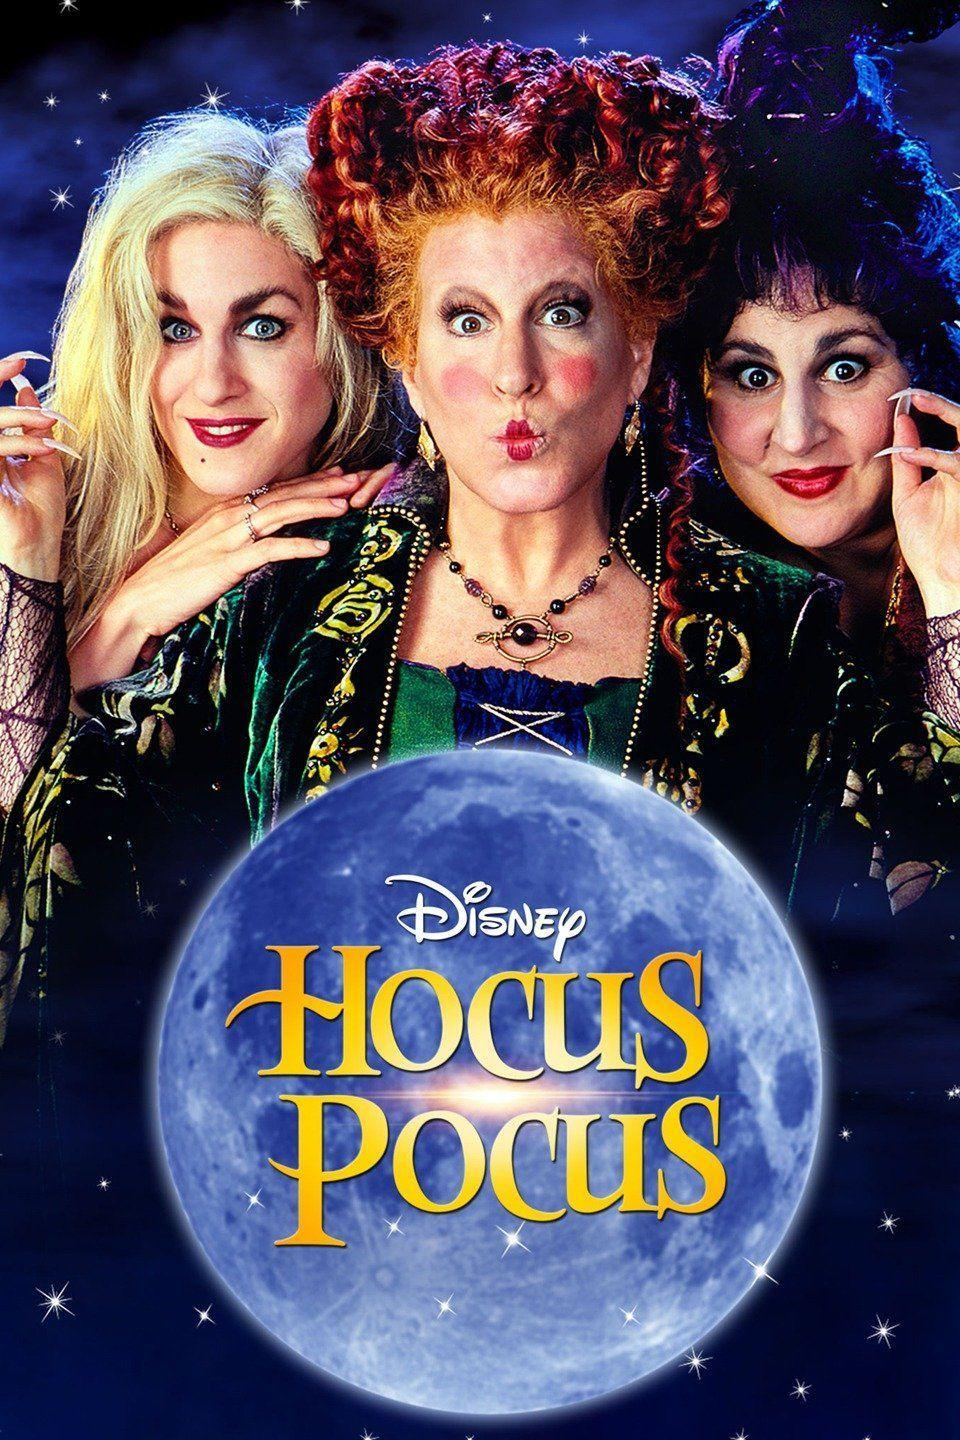 """<p>This 1993 movie about three wacky 300-year-old witches—the Sanderson sisters—is truly a Halloween classic. After three teens accidentally bring the trio back on Halloween, the witches are """"running amuck"""" and literally digging up old friends from the past. The star-studded cast includes Bette Midler, Sarah Jessica Parker, and Kathy Najimy.</p><p><a class=""""link rapid-noclick-resp"""" href=""""https://go.redirectingat.com?id=74968X1596630&url=https%3A%2F%2Fwww.disneyplus.com%2Fmovies%2Fhocus-pocus%2F2iCcYcGrx7qD&sref=https%3A%2F%2Fwww.countryliving.com%2Flife%2Fentertainment%2Fg32748070%2Fdisney-plus-halloween-movies%2F"""" rel=""""nofollow noopener"""" target=""""_blank"""" data-ylk=""""slk:WATCH NOW"""">WATCH NOW</a></p>"""